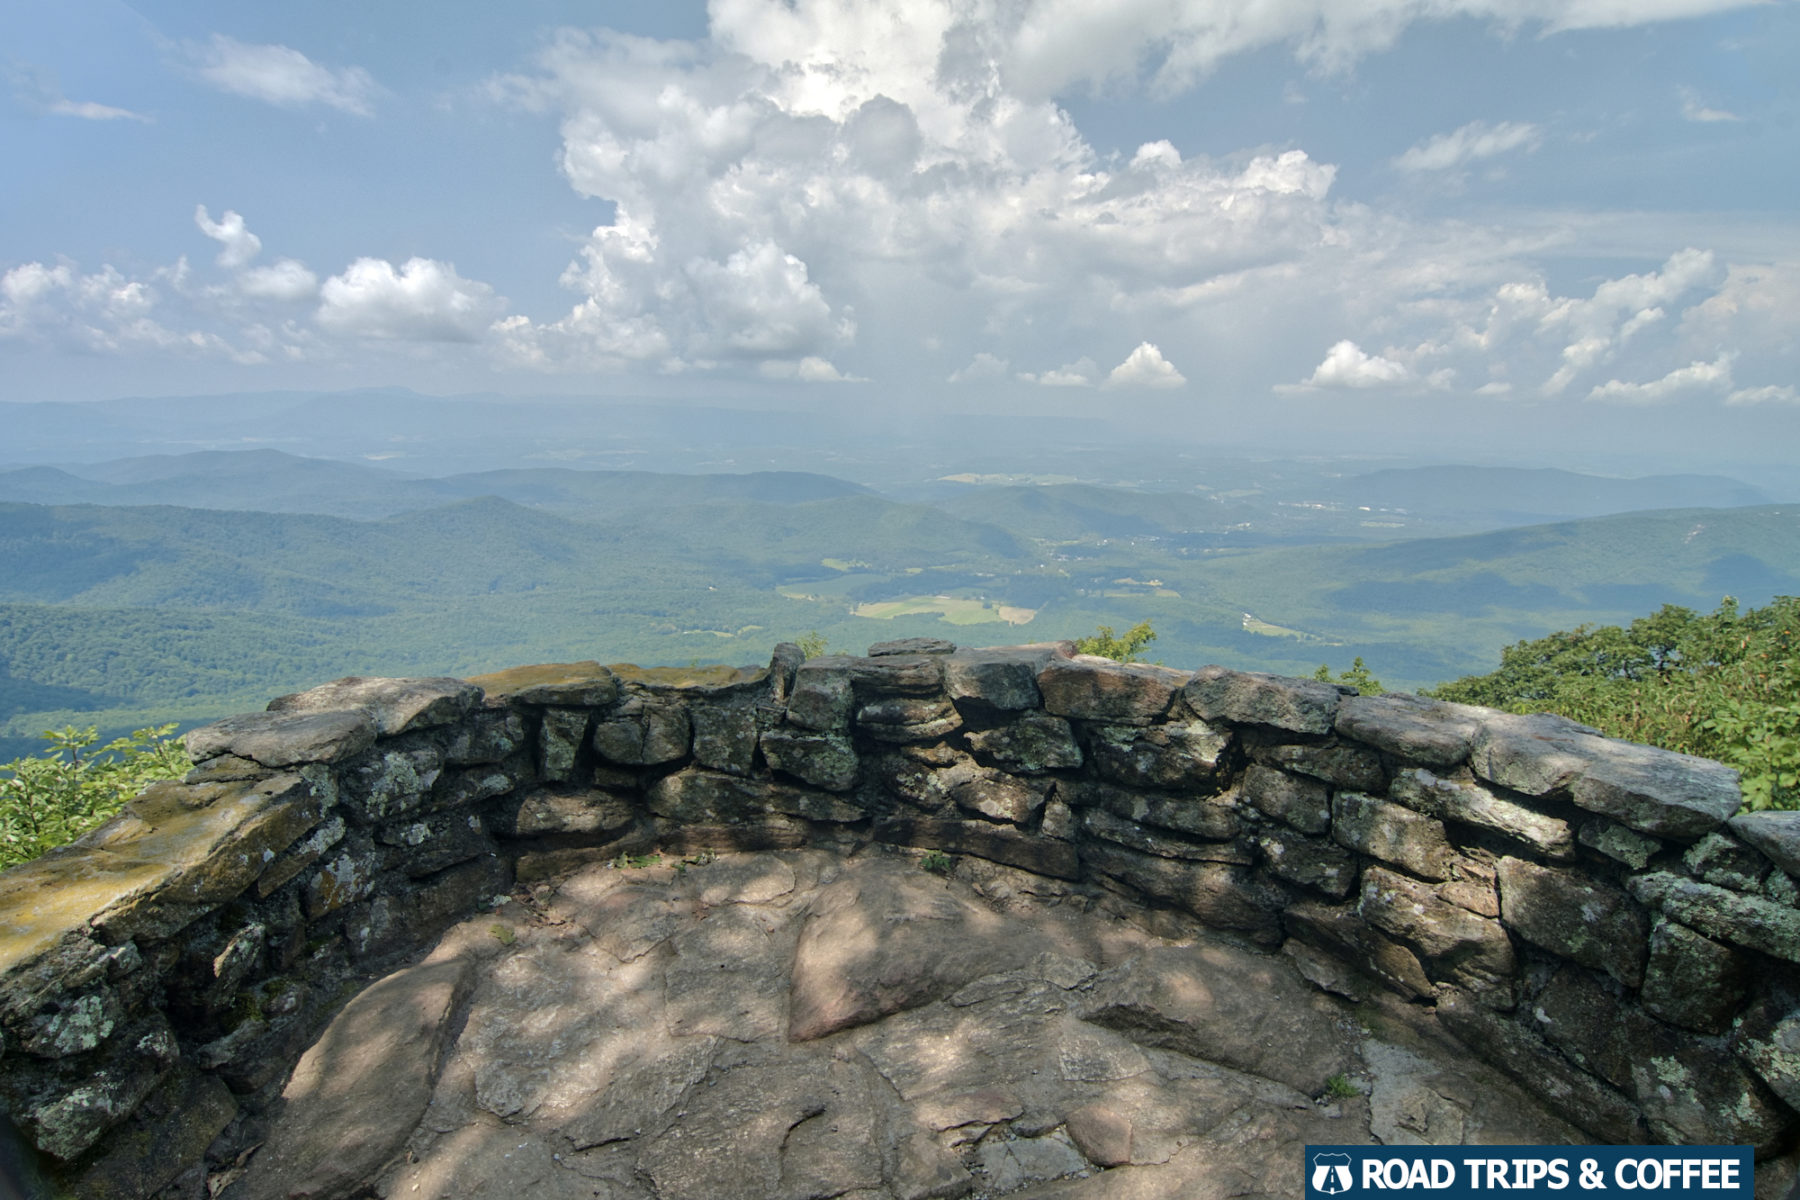 A stone wall surrounds the Thunder Ridge Overlook on the Blue Ridge Parkway in Virginia